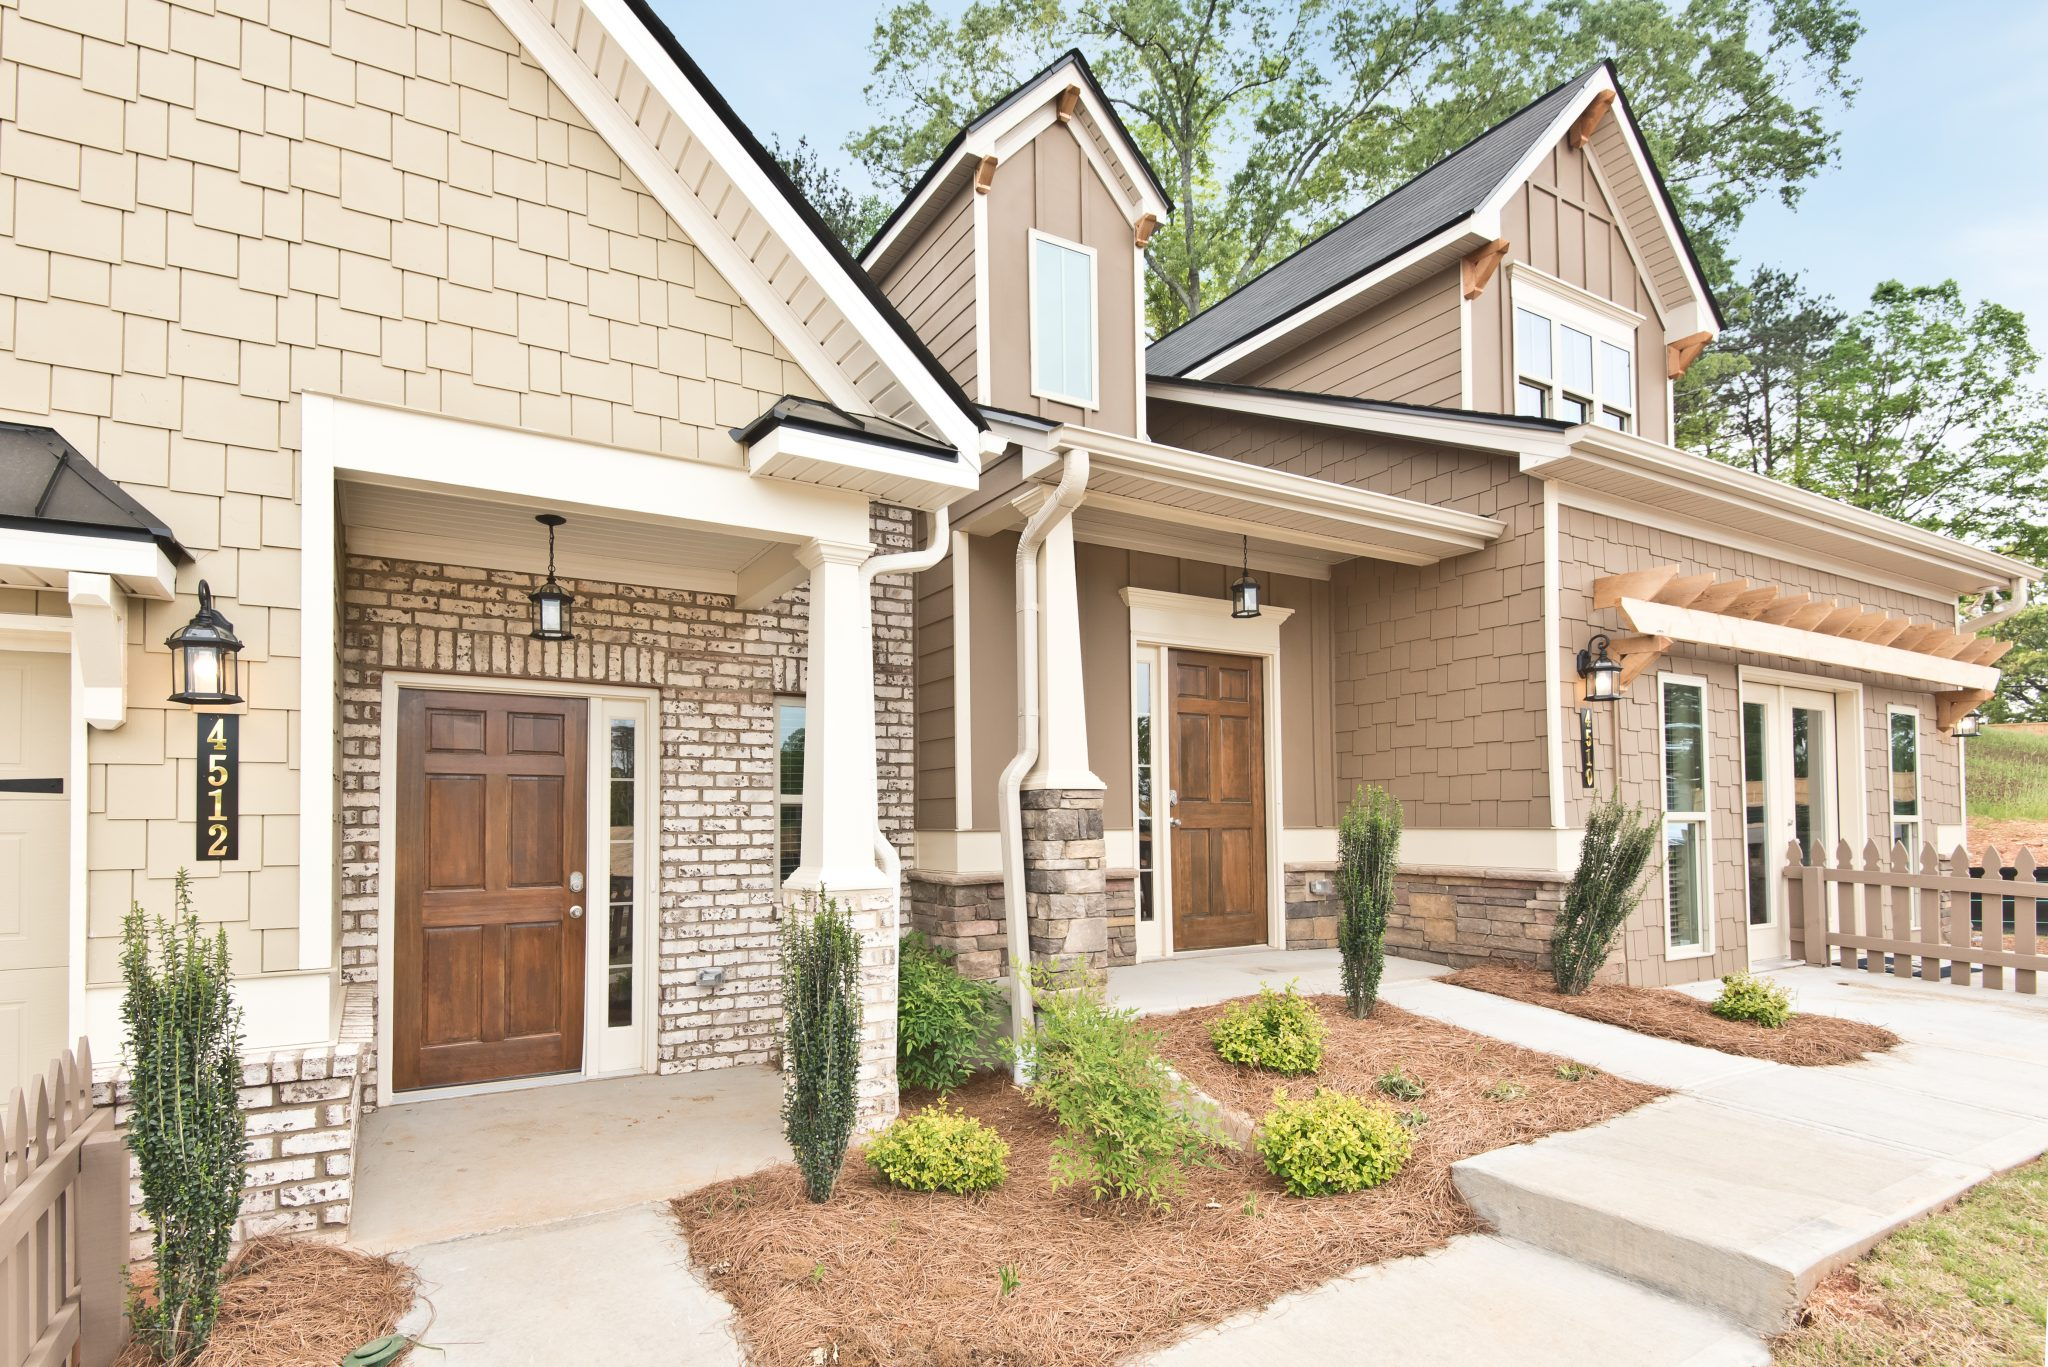 The front entries in Villas at Hickory Grove